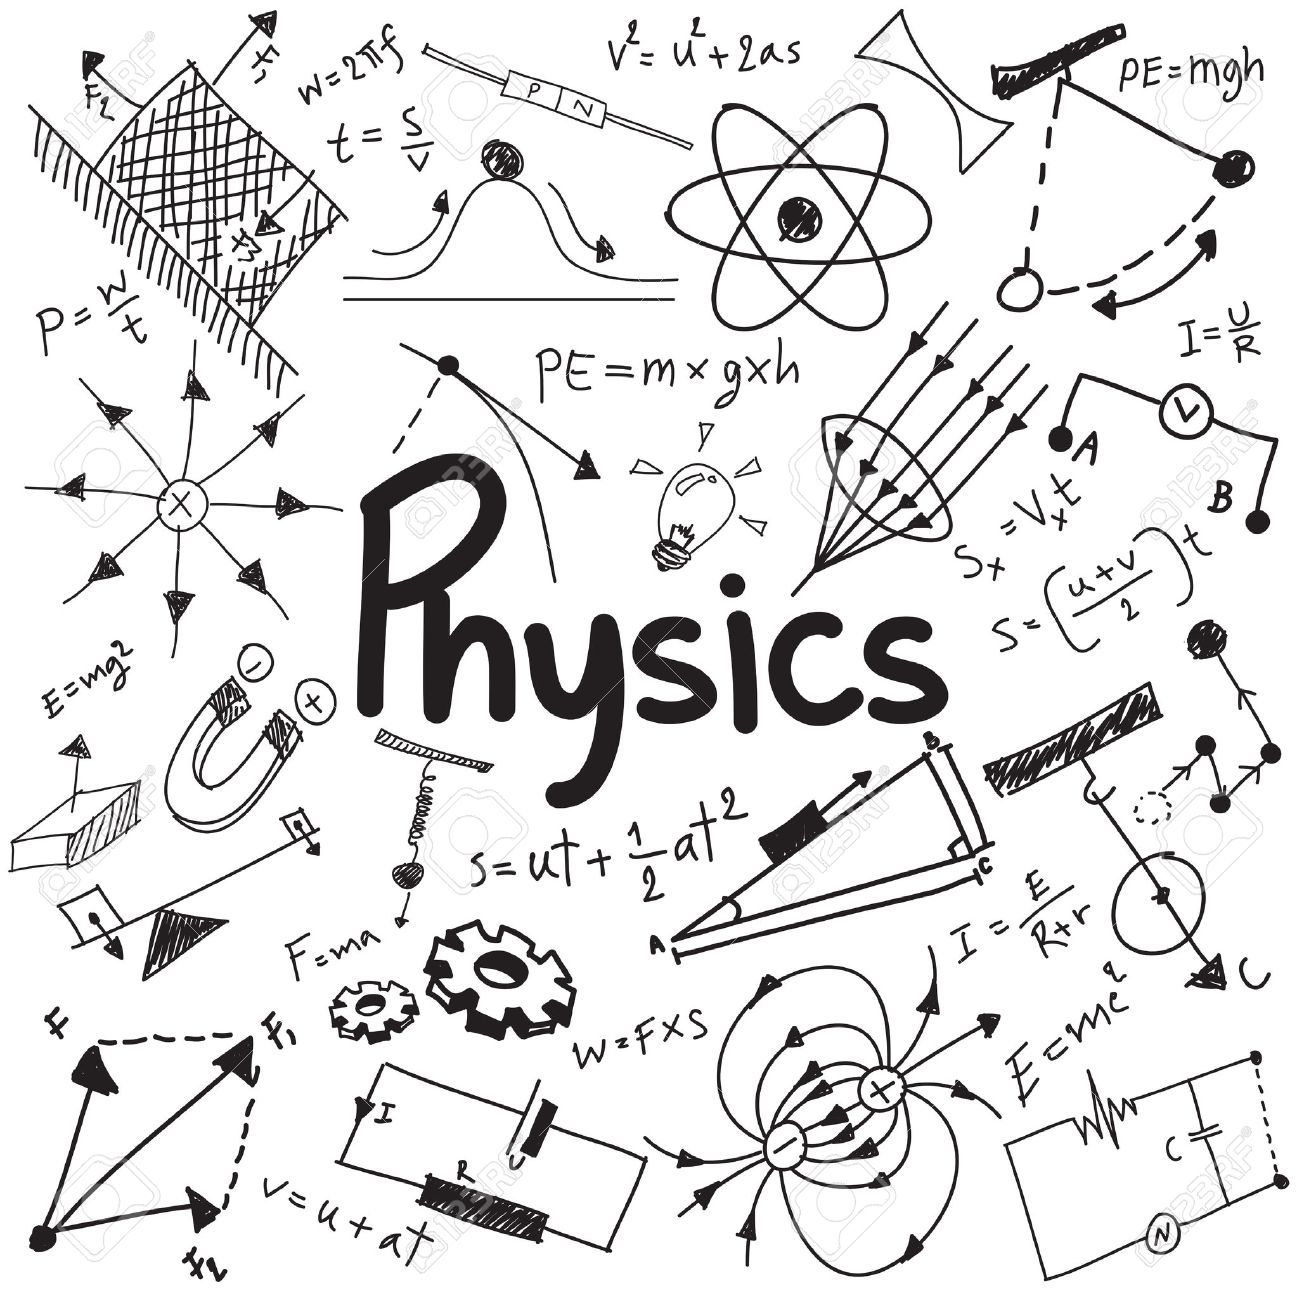 Free physics clipart images vector free library Free physics clipart images 7 » Clipart Portal vector free library